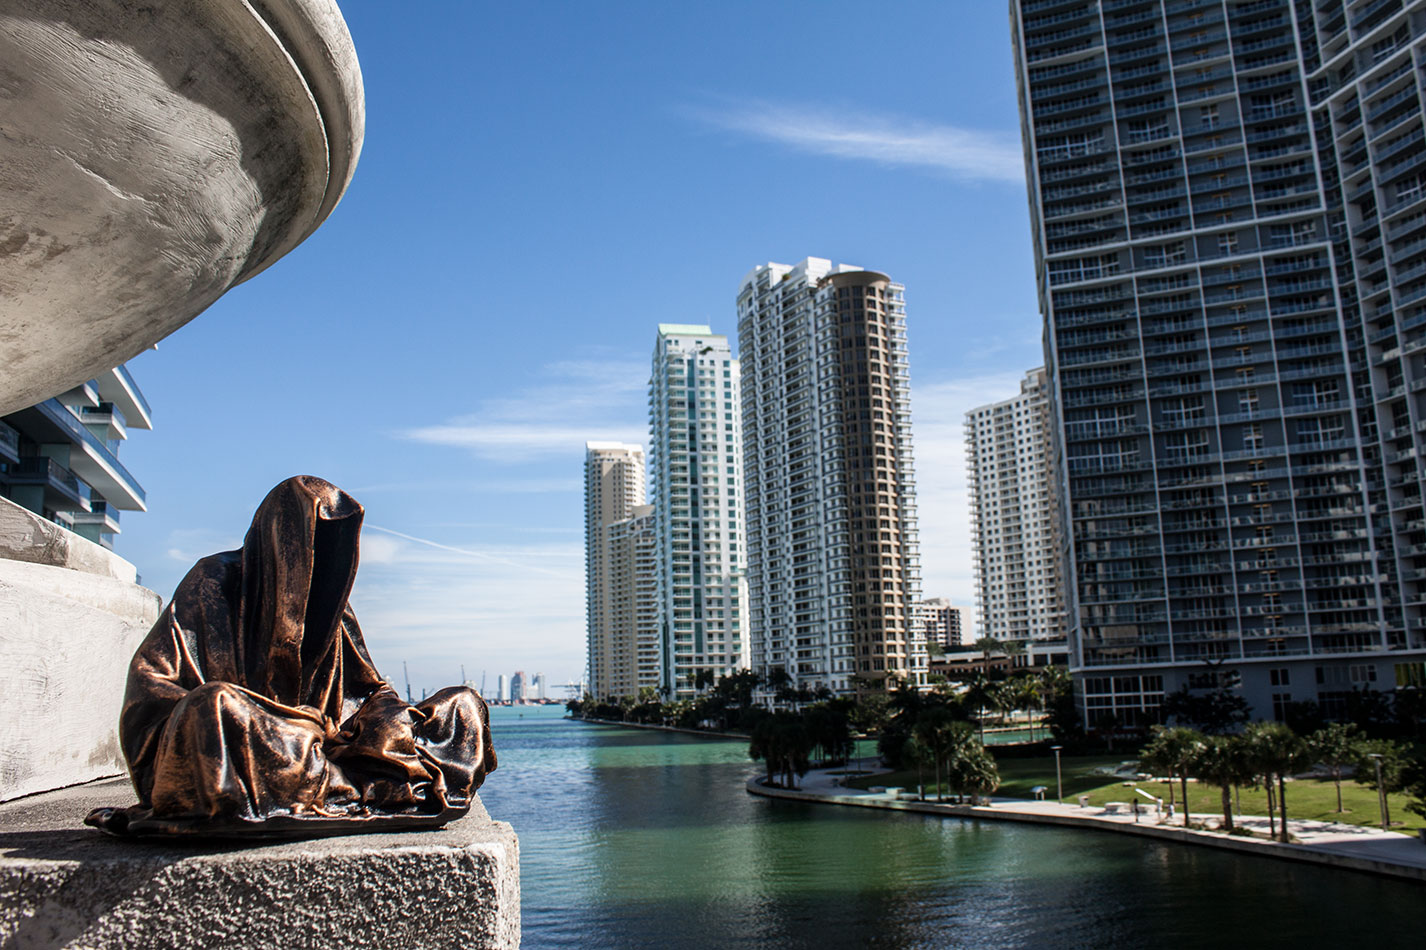 public-art-basel-miami-beach-fair-usa-florida-guardians-of-time-manfred-kili-kielnhofer-contemporary-fine-art-modern-arts-design-antiques-sculpture-6728